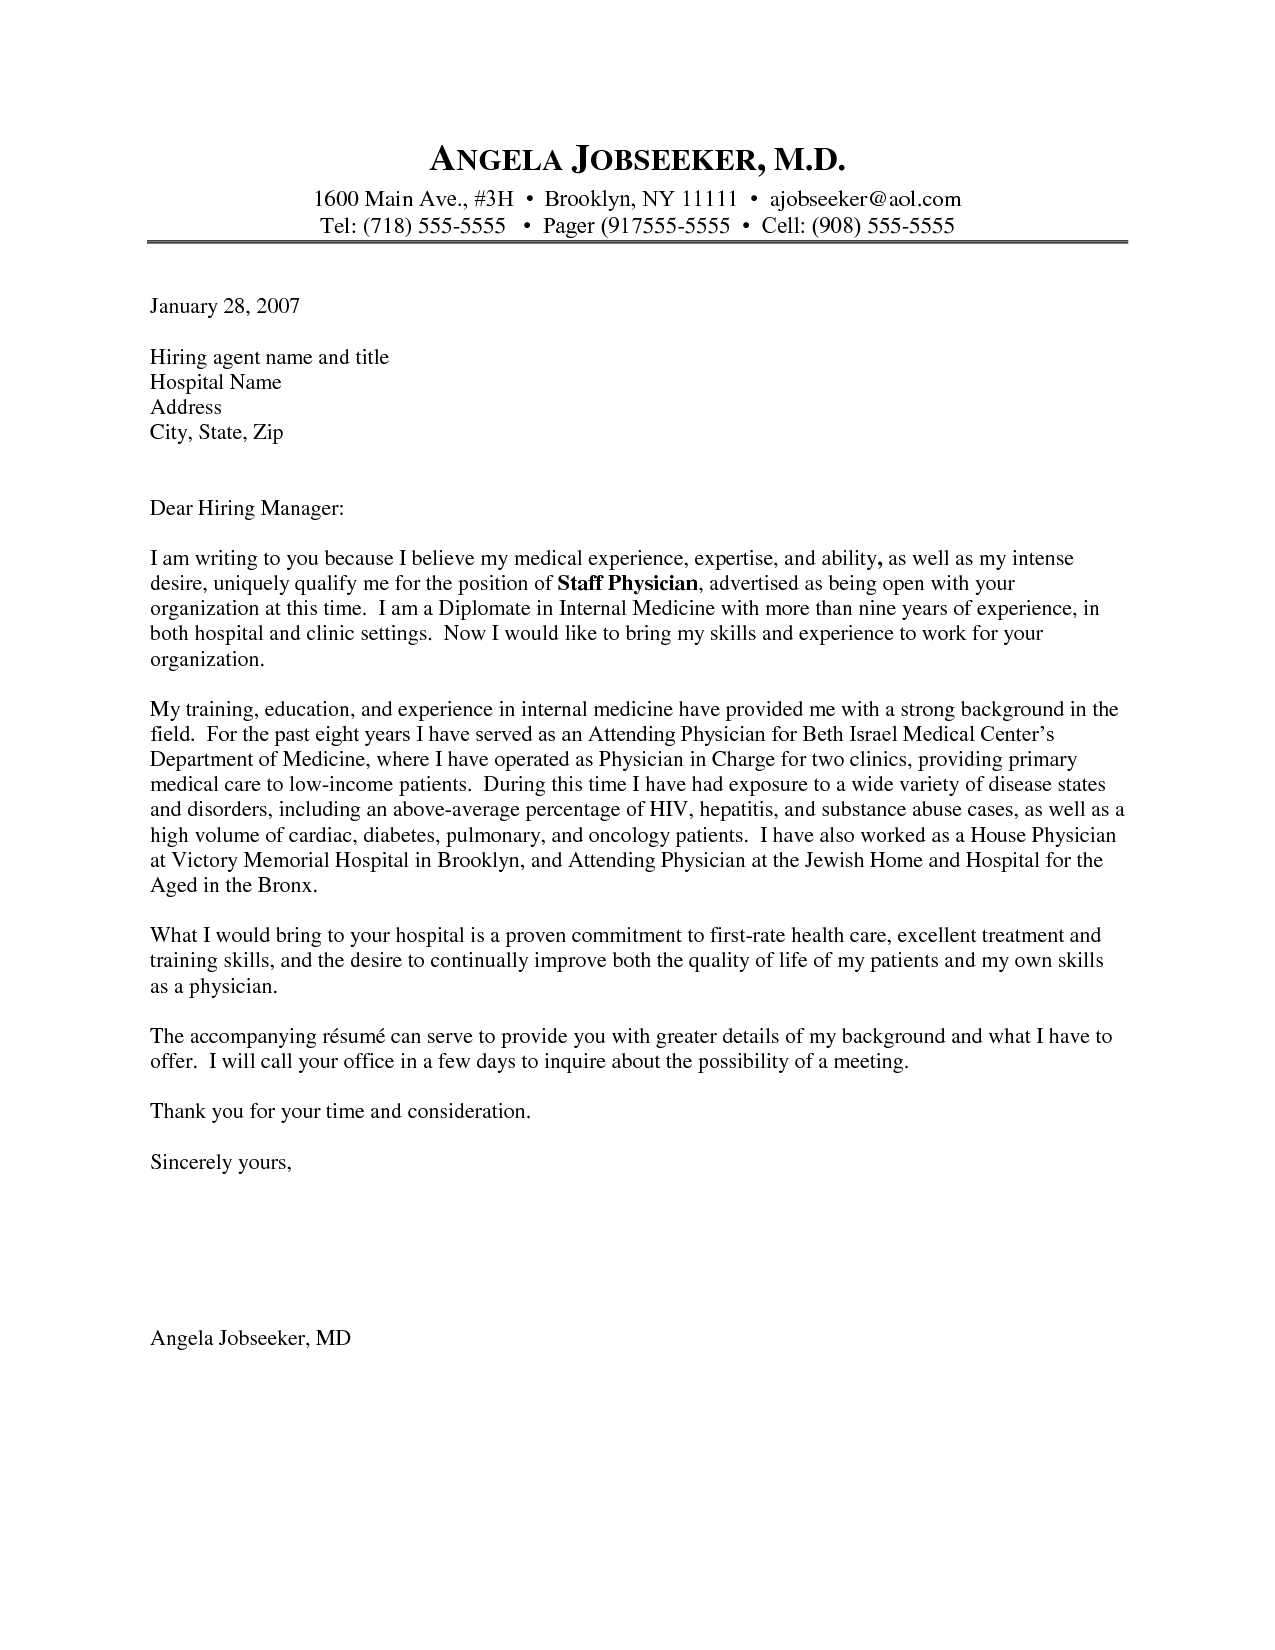 examples of medical coverletters doctor cover letter example - What Is A Cover Letter For Job